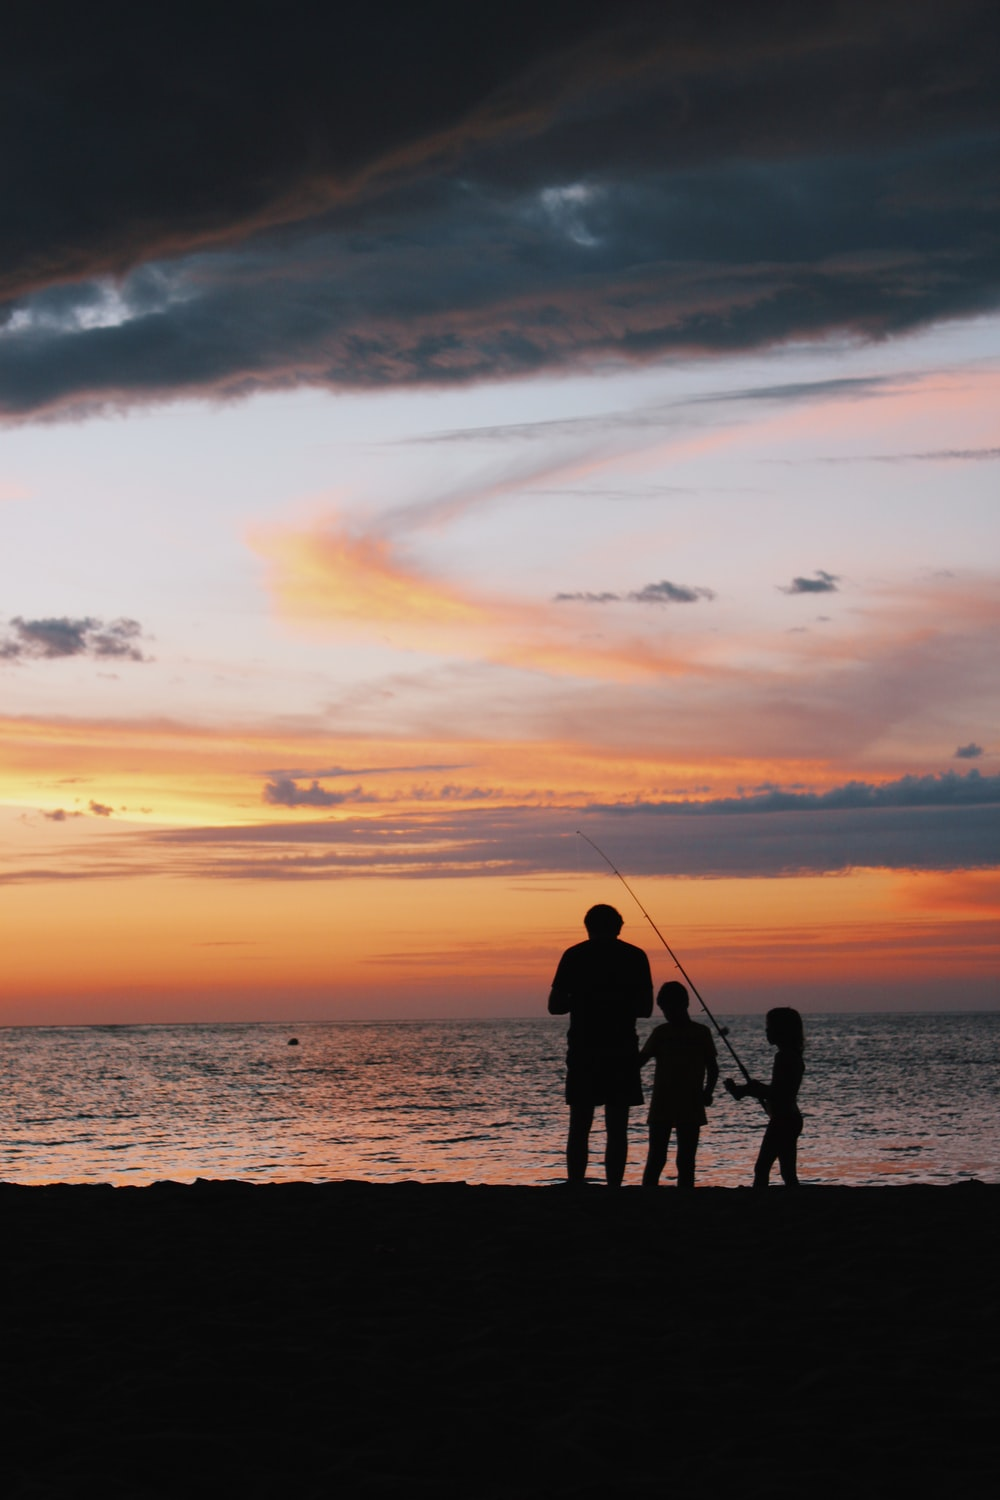 silhouette of children and man standing on shore with fishing rod during golden hour